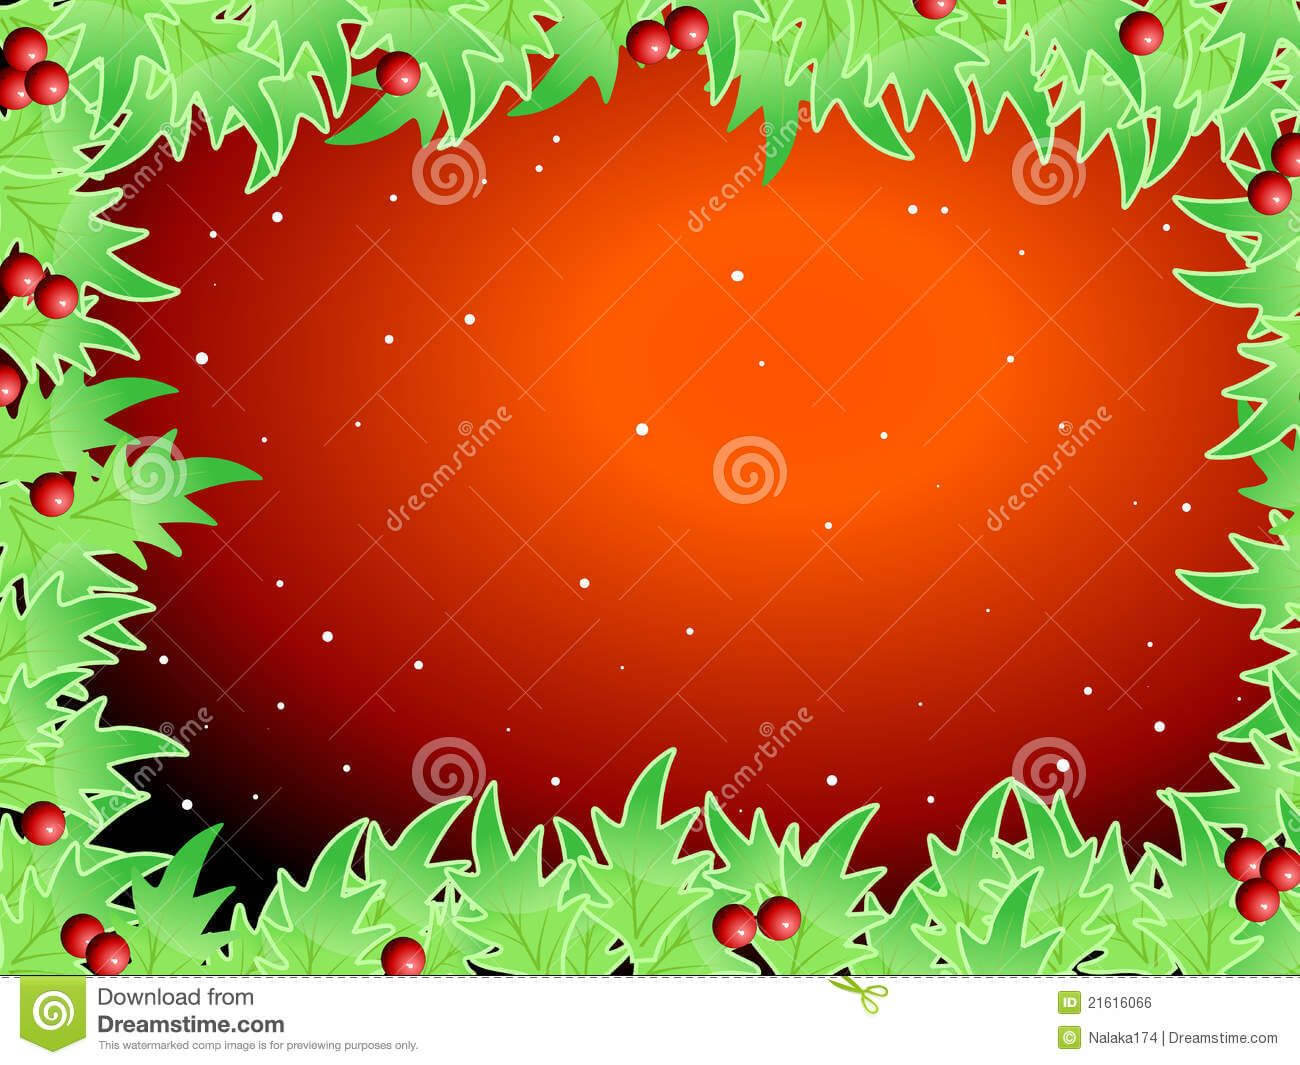 Blank Template For Christmas Greetings Card Royalty Free For Blank Christmas Card Templates Free